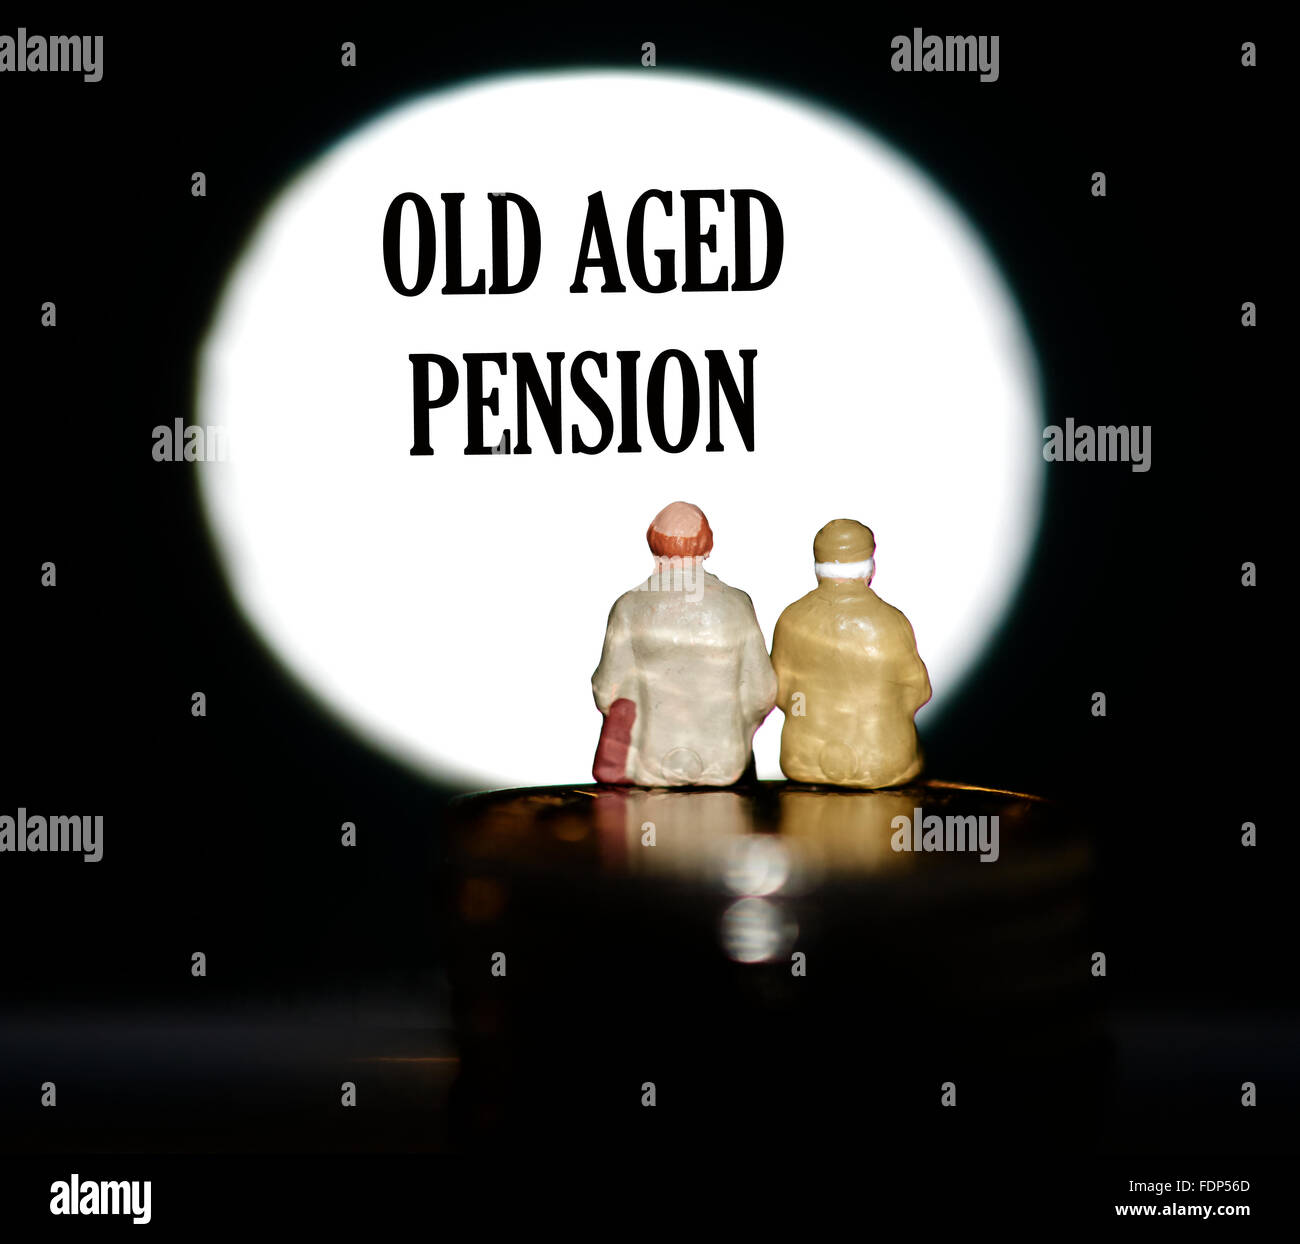 Miniature figurine pensioners sitting on coins in front of a spotlight showing the words Old age pension concept Stock Photo